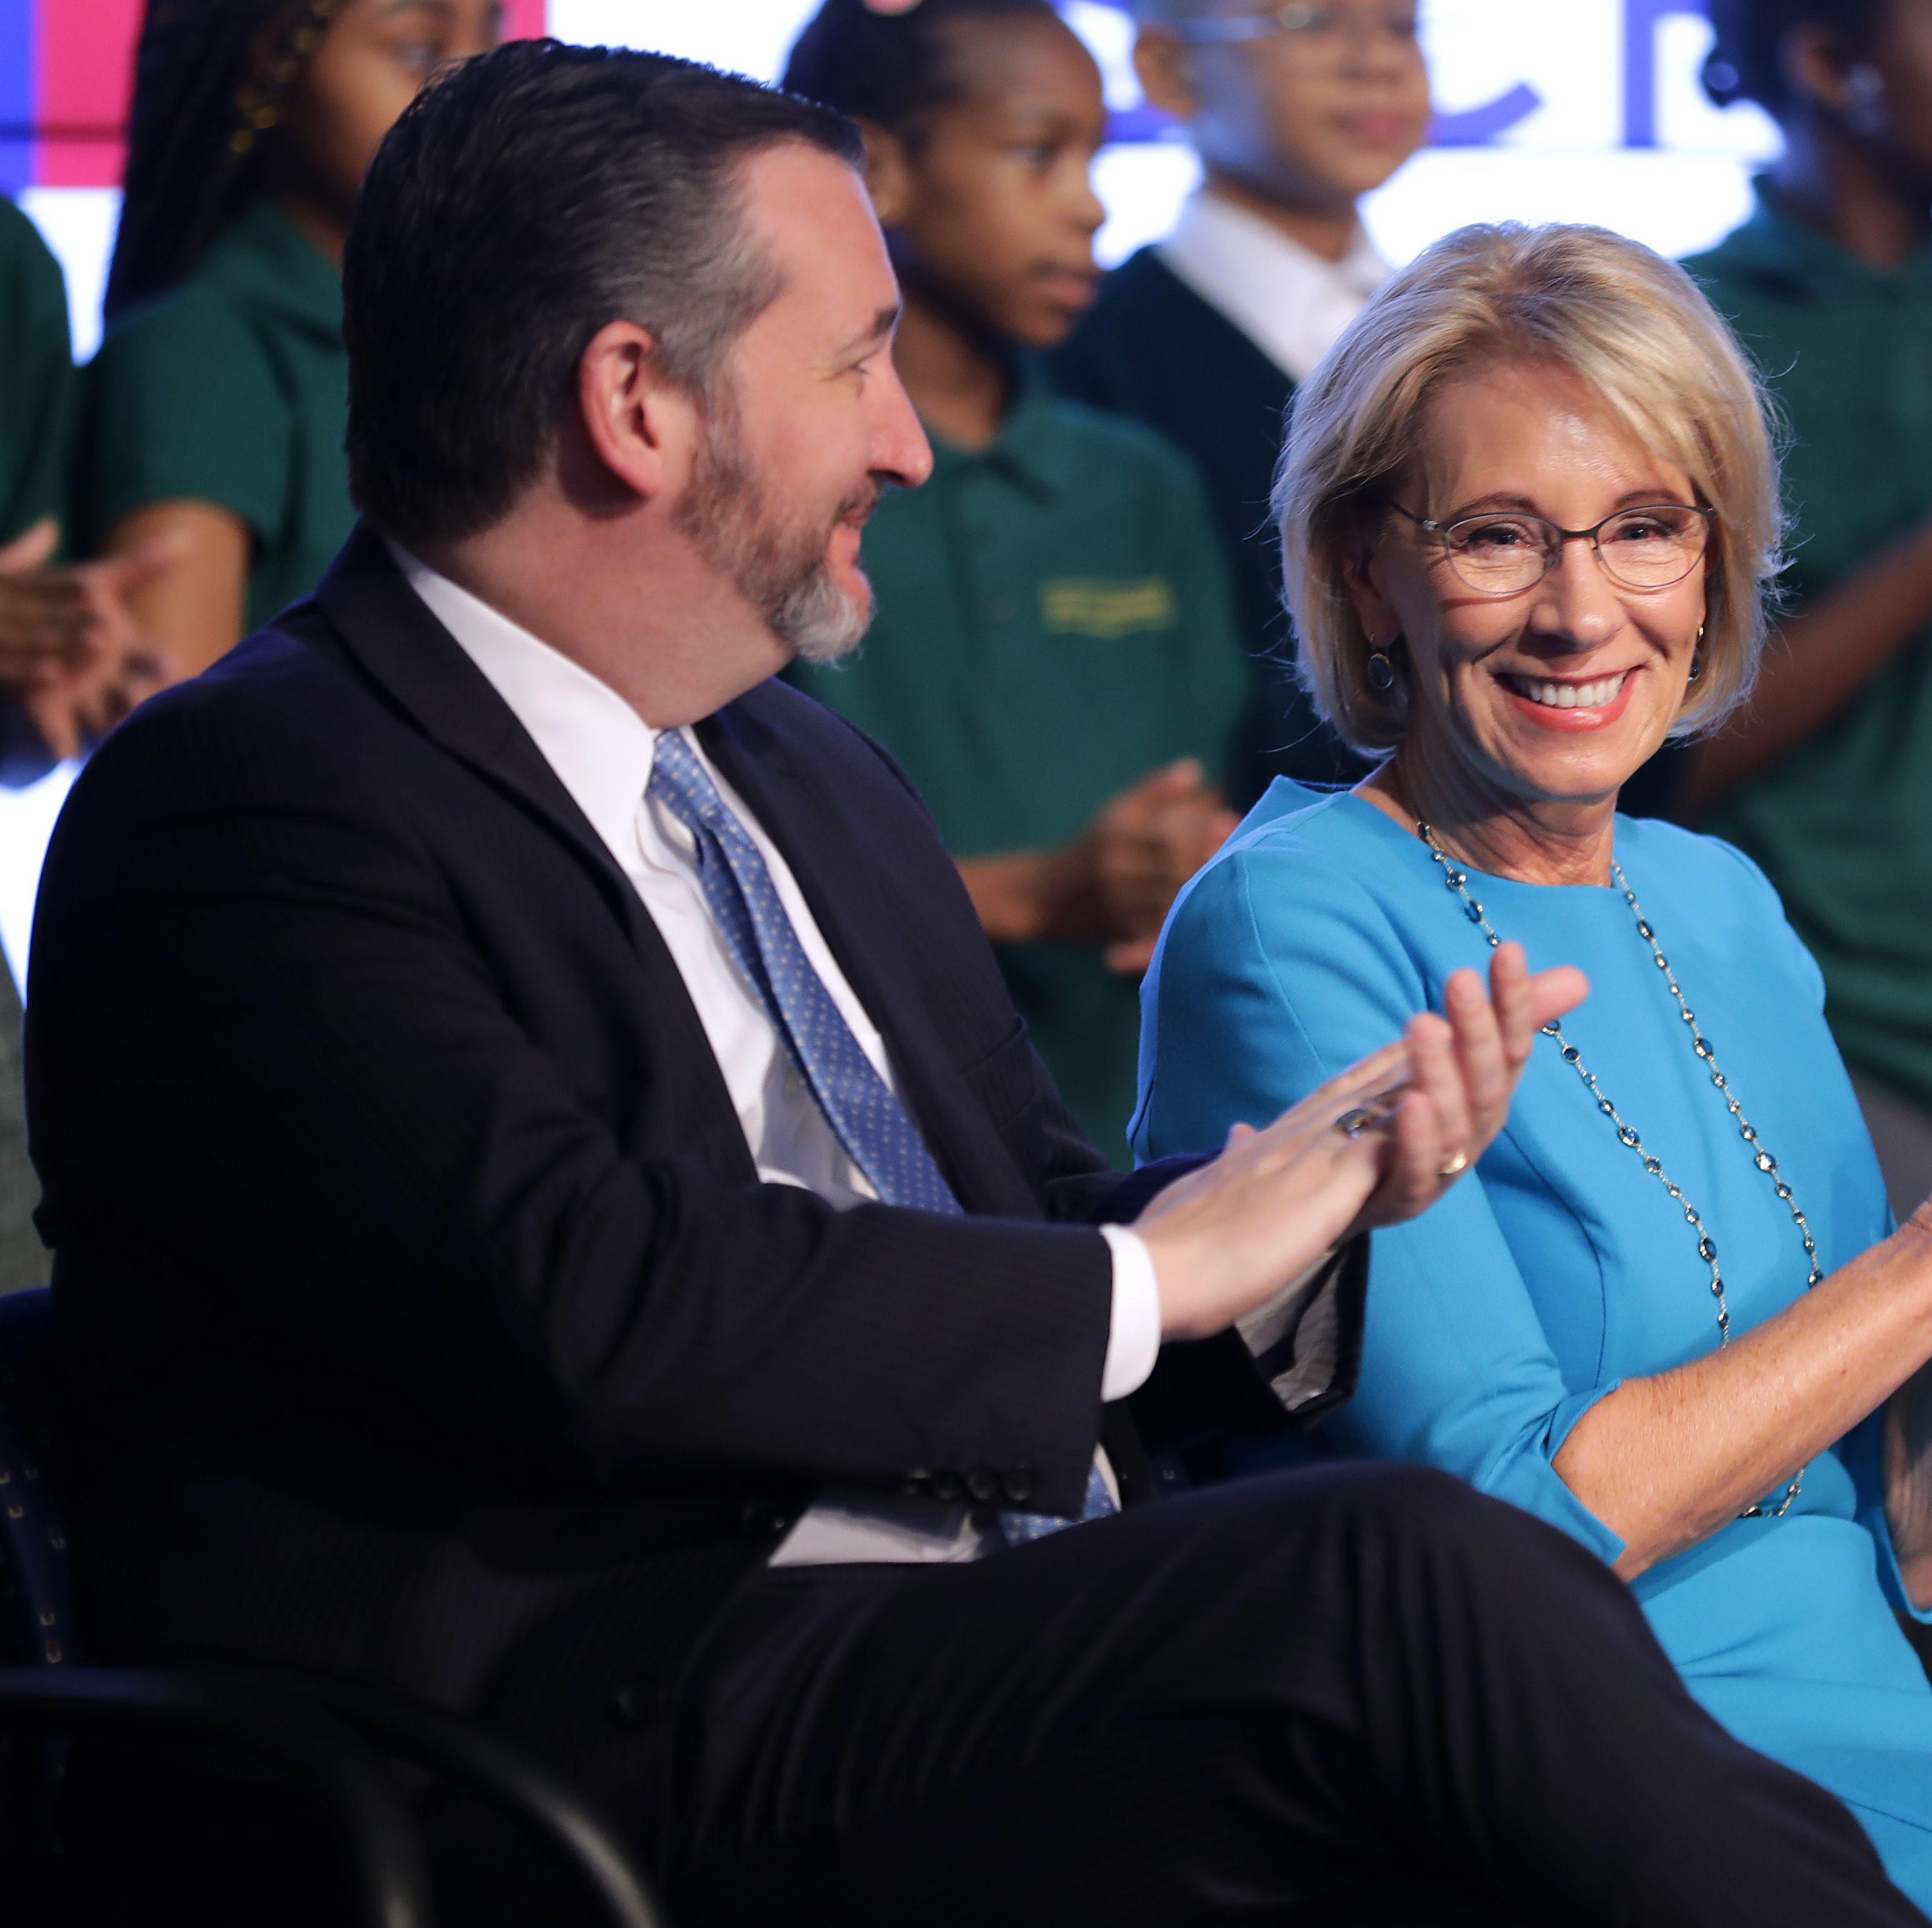 U.S. Education Secretary Betsy DeVos (R) and Sen. Ted Cruz (R-TX) participate in an event about their proposal for Education Freedom Scholarships at the Education Department headquarters February 28, 2019 in Washington, DC.